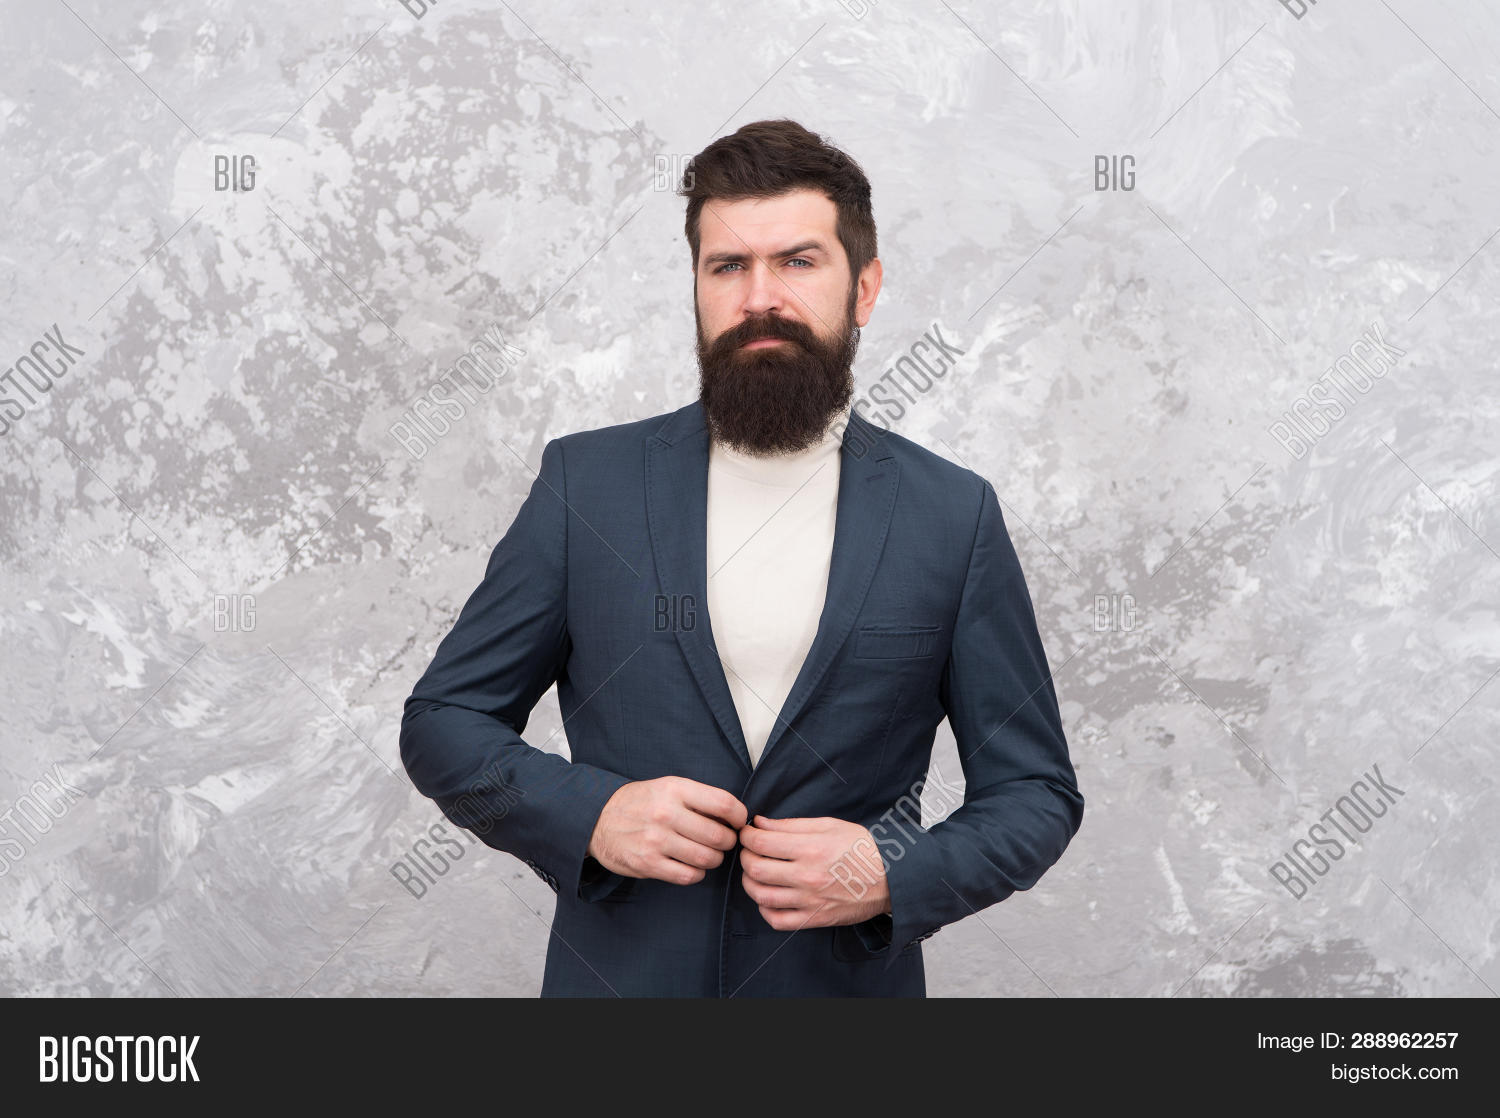 2bdc684e Man Handsome Bearded Businessman Wear Formal Suit. Menswear And Fashion  Concept. Man Of Style